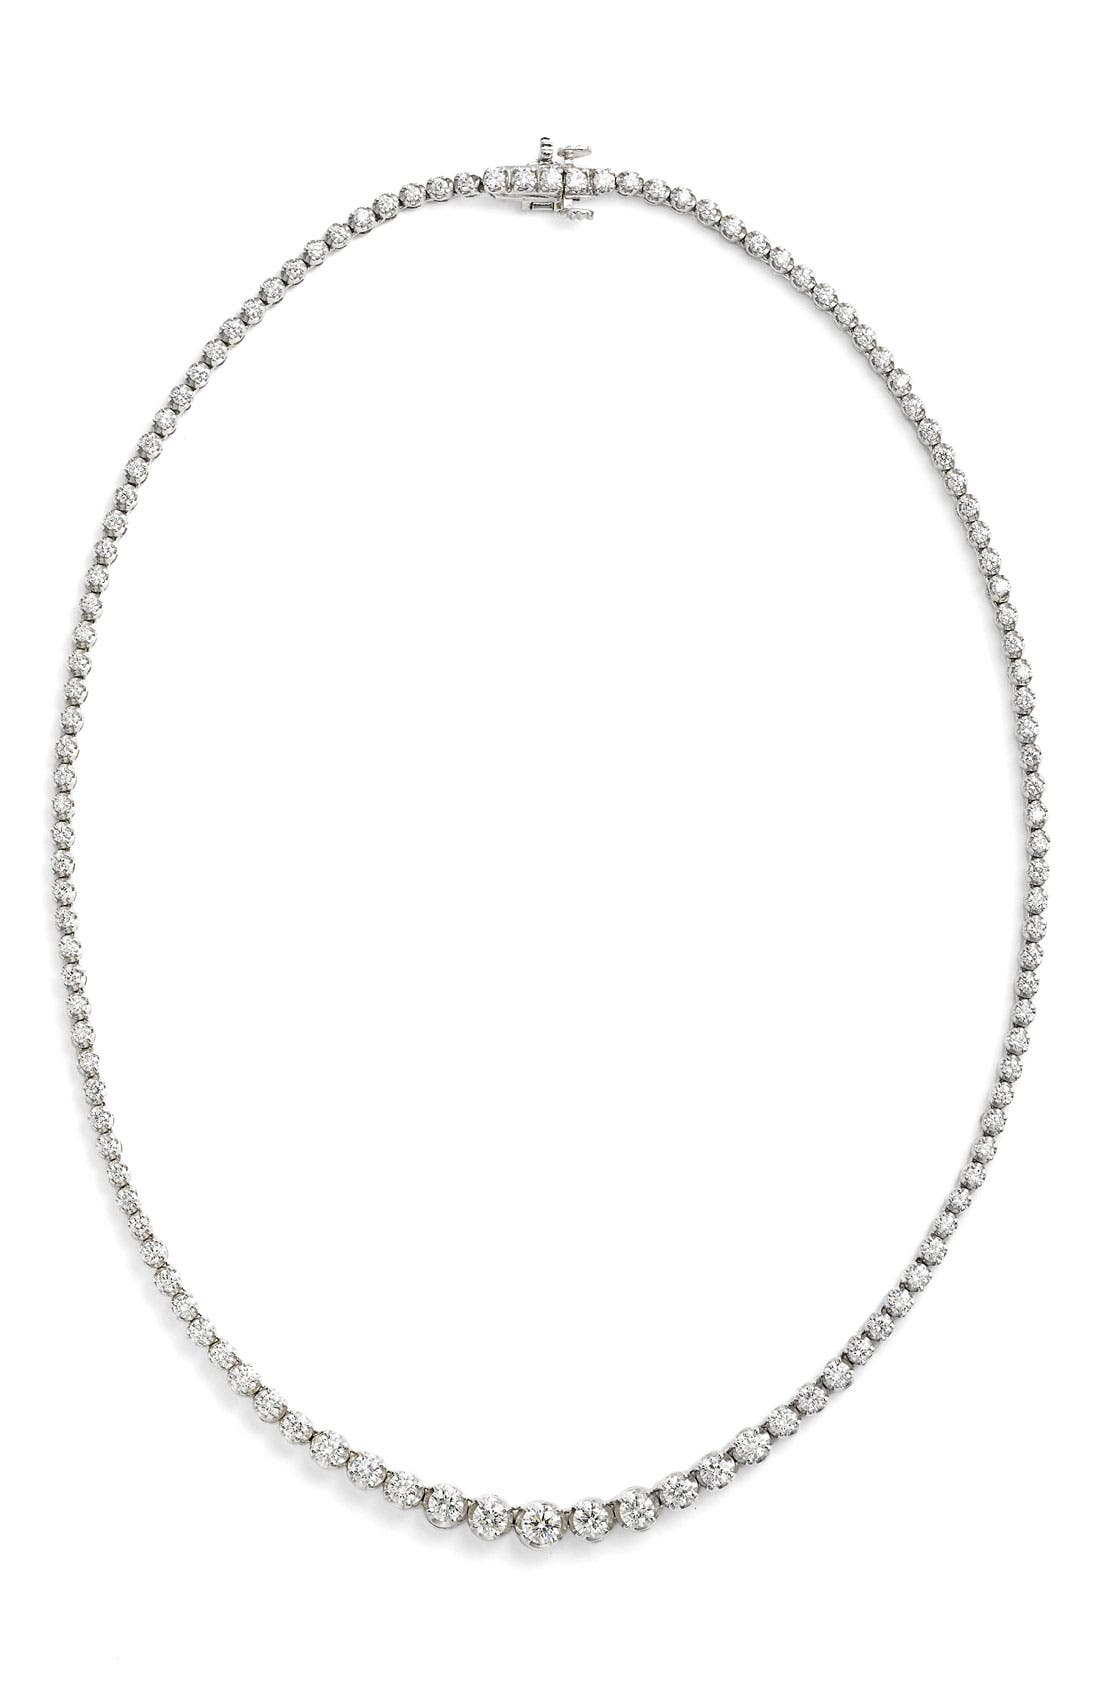 Alternate Image 1 Selected - Kwiat 'Riviera' Diamond Choker Necklace